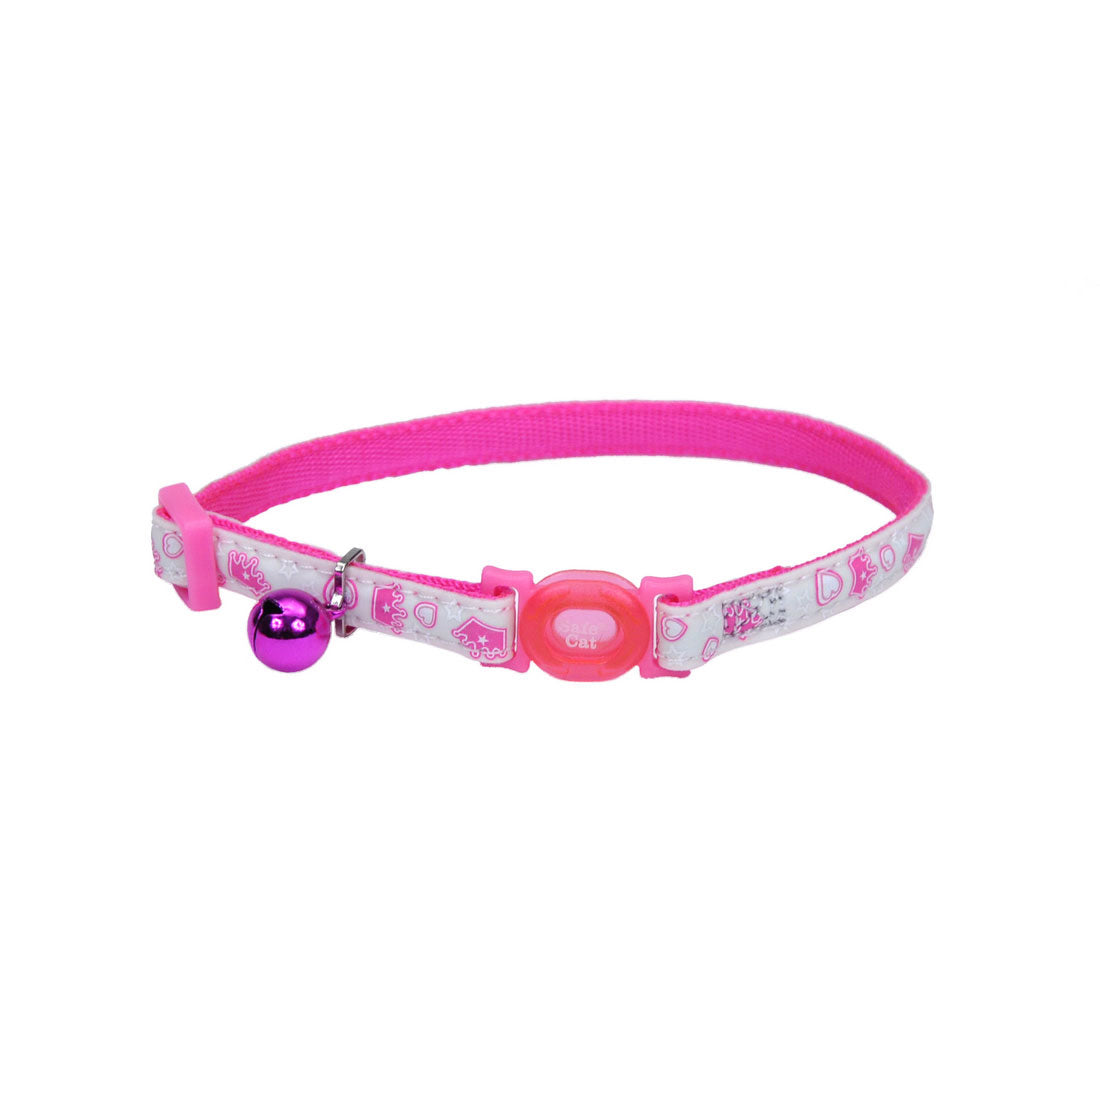 Coastal Glow in the Dark Collar Glowing Pink Queen - Collares para Perros